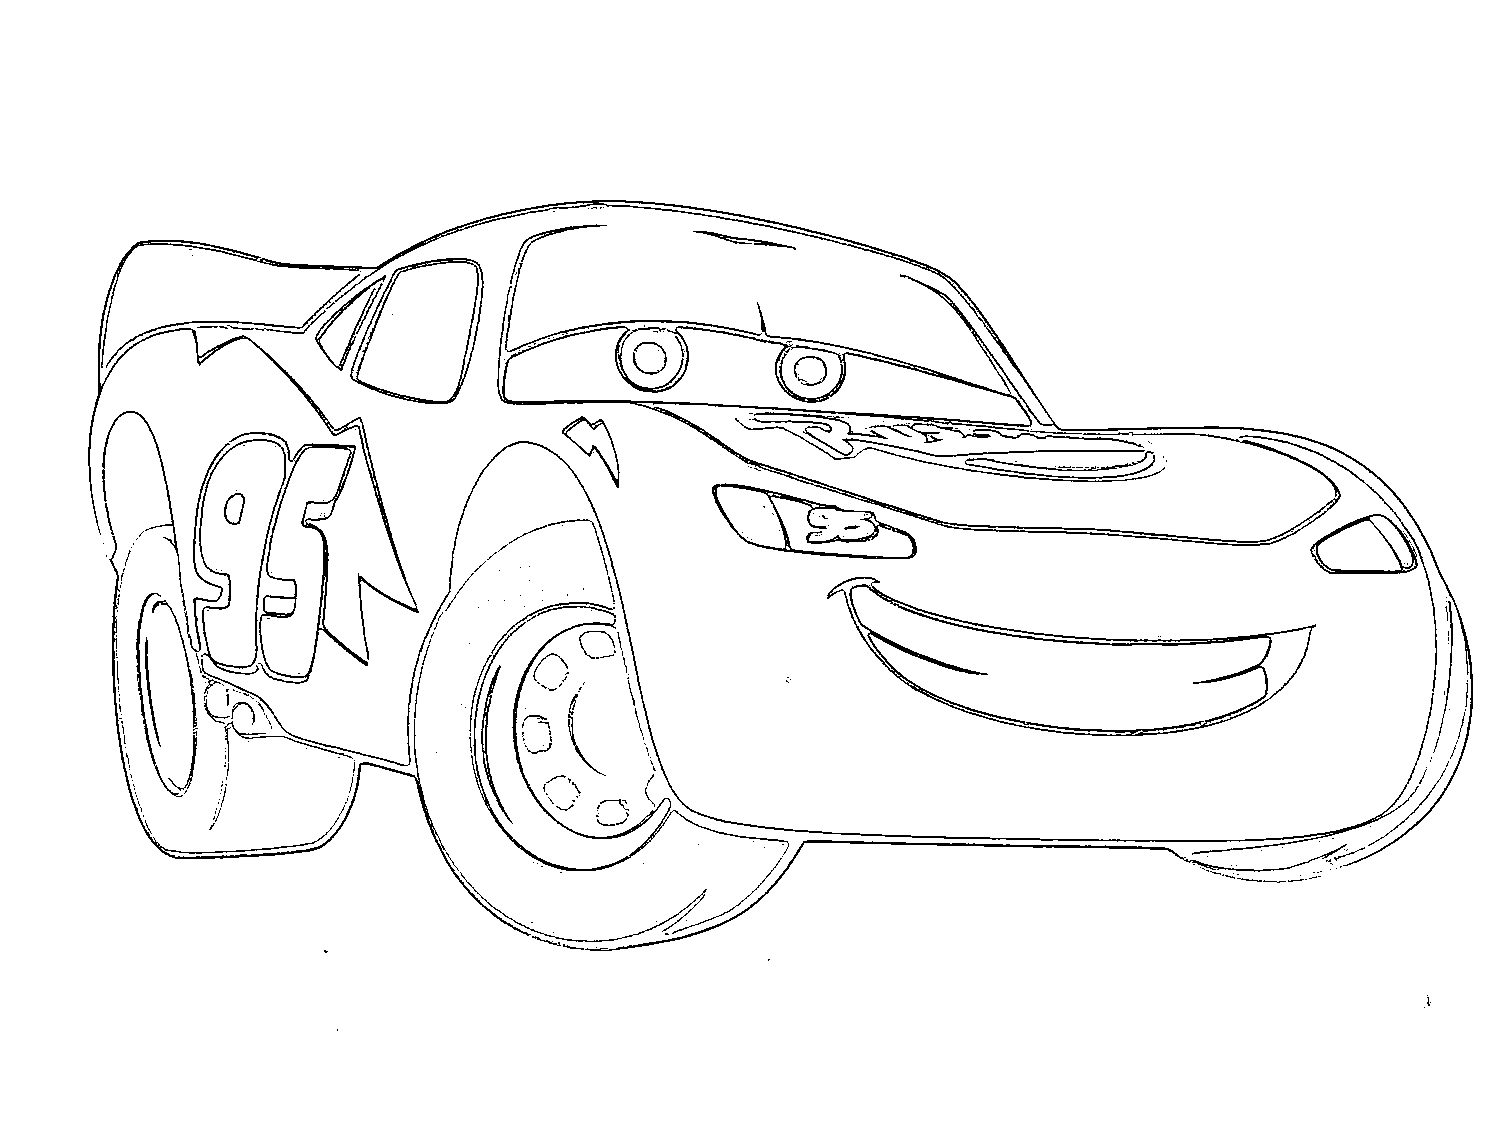 Lightning Mcqueen Coloring Page Lovely Disney Cars 2 Lightning Gallery Of Car Coloring Pages Disney Cars the Movie to Print Grig3 Download